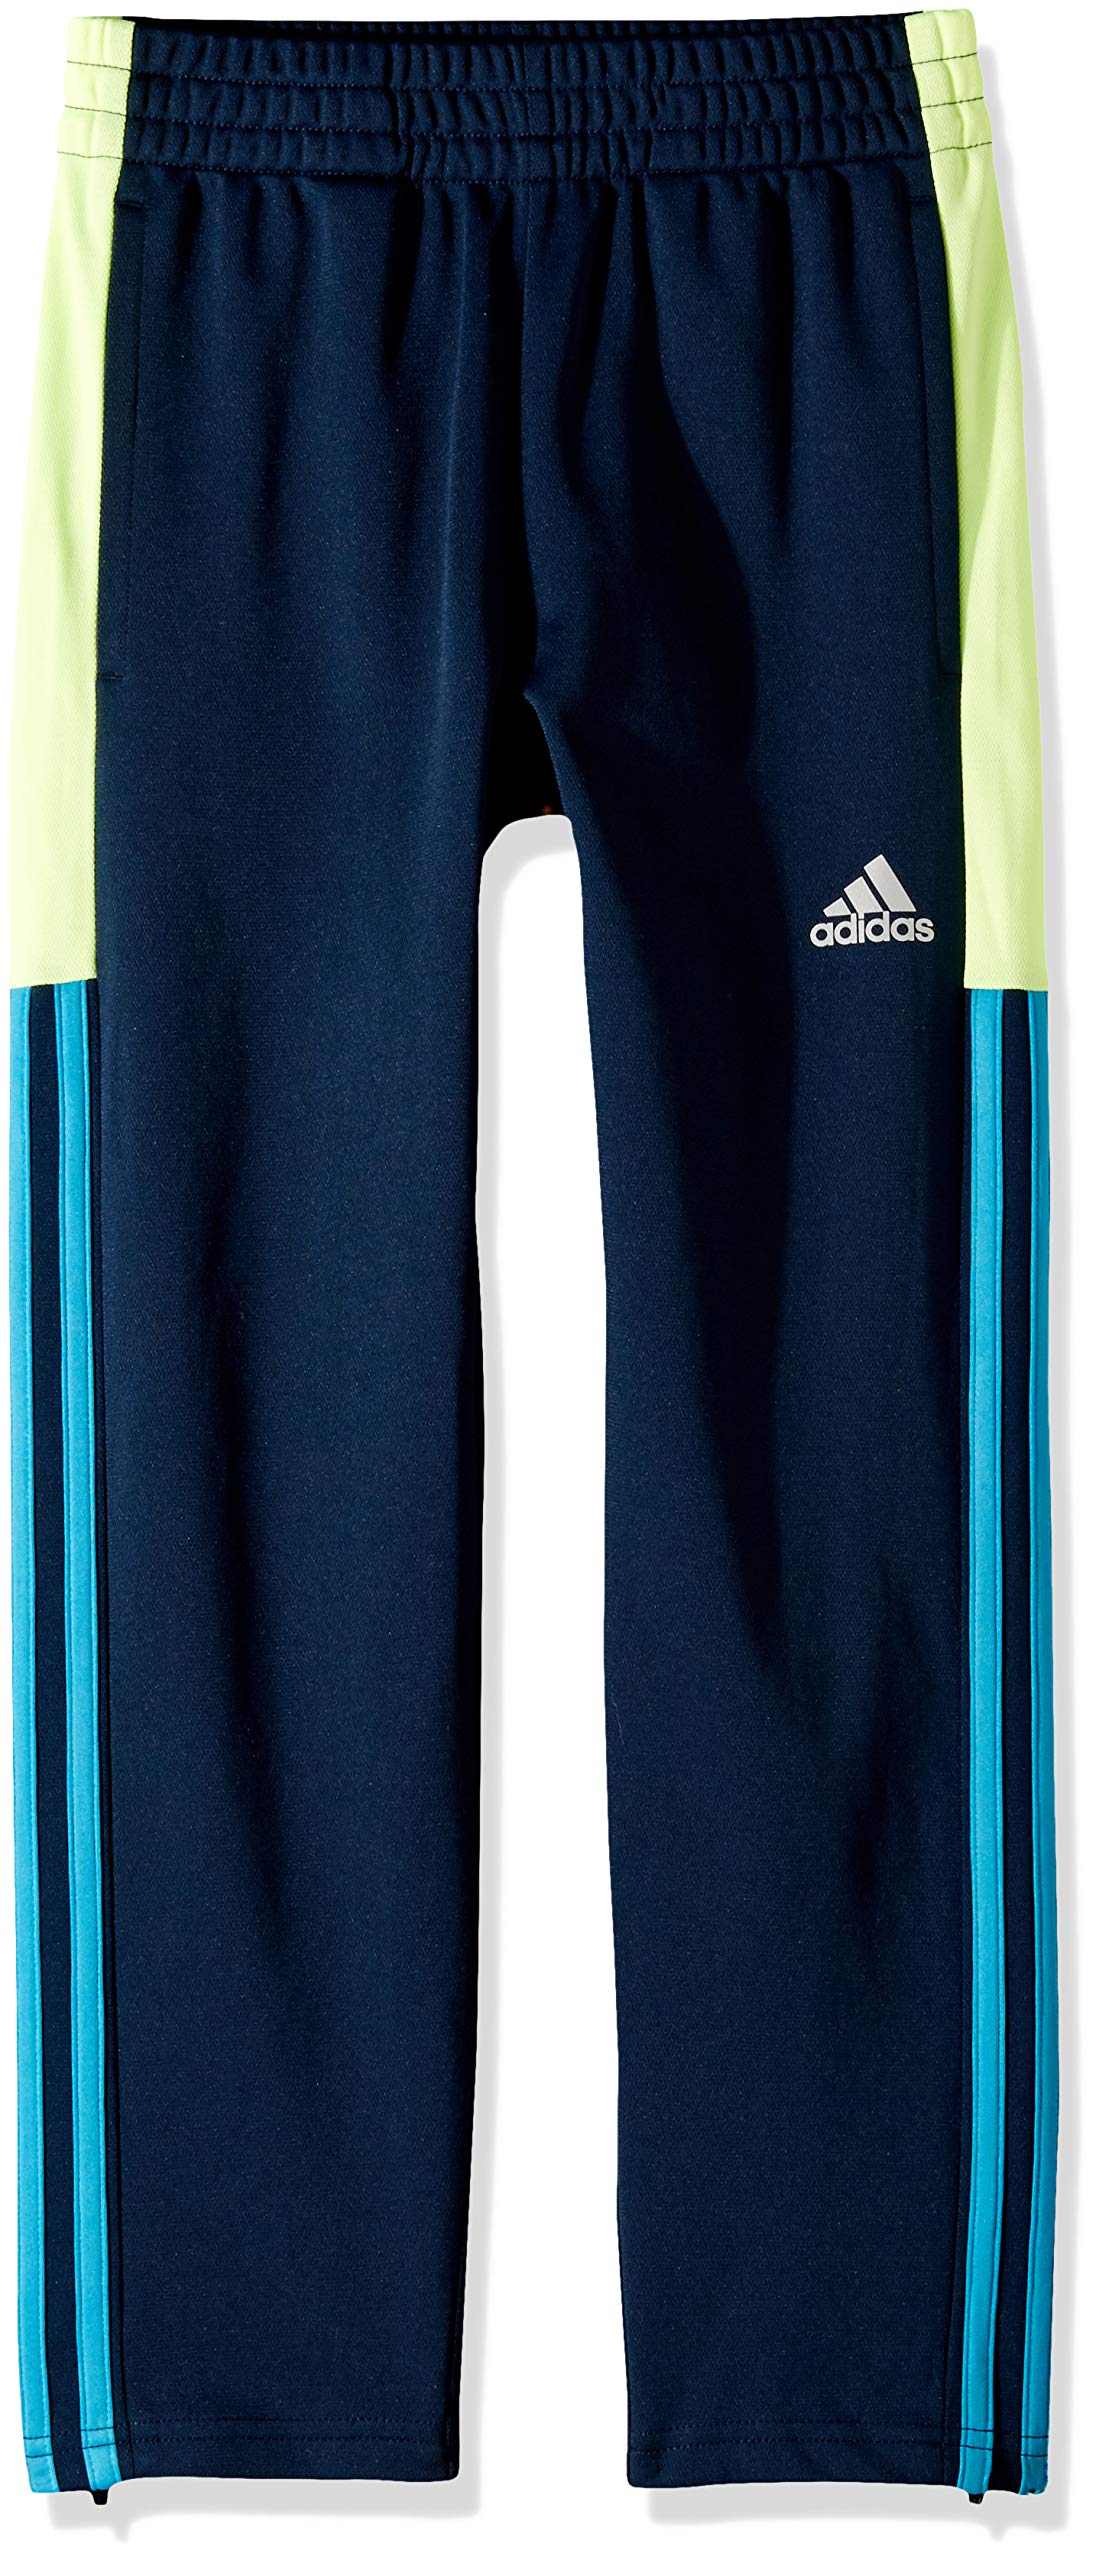 adidas Boys' Big Tapered Trainer Pant, Striker Navy/Yellow, M (10/12)